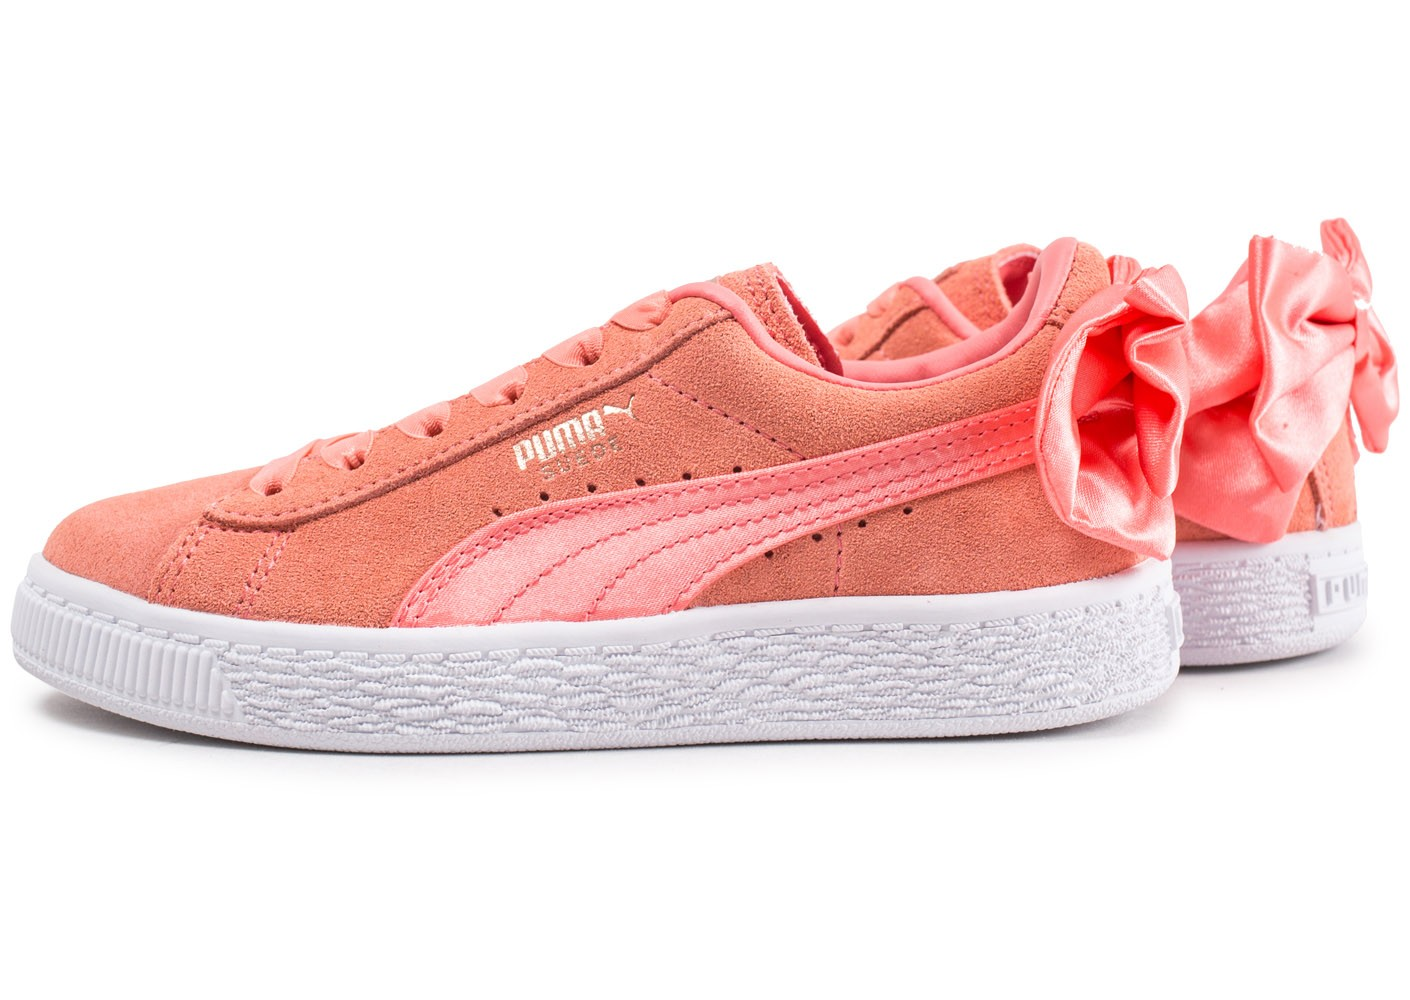 Puma Chausport Chaussures Basket Suede Bow Orange Enfant SGUzMpqV